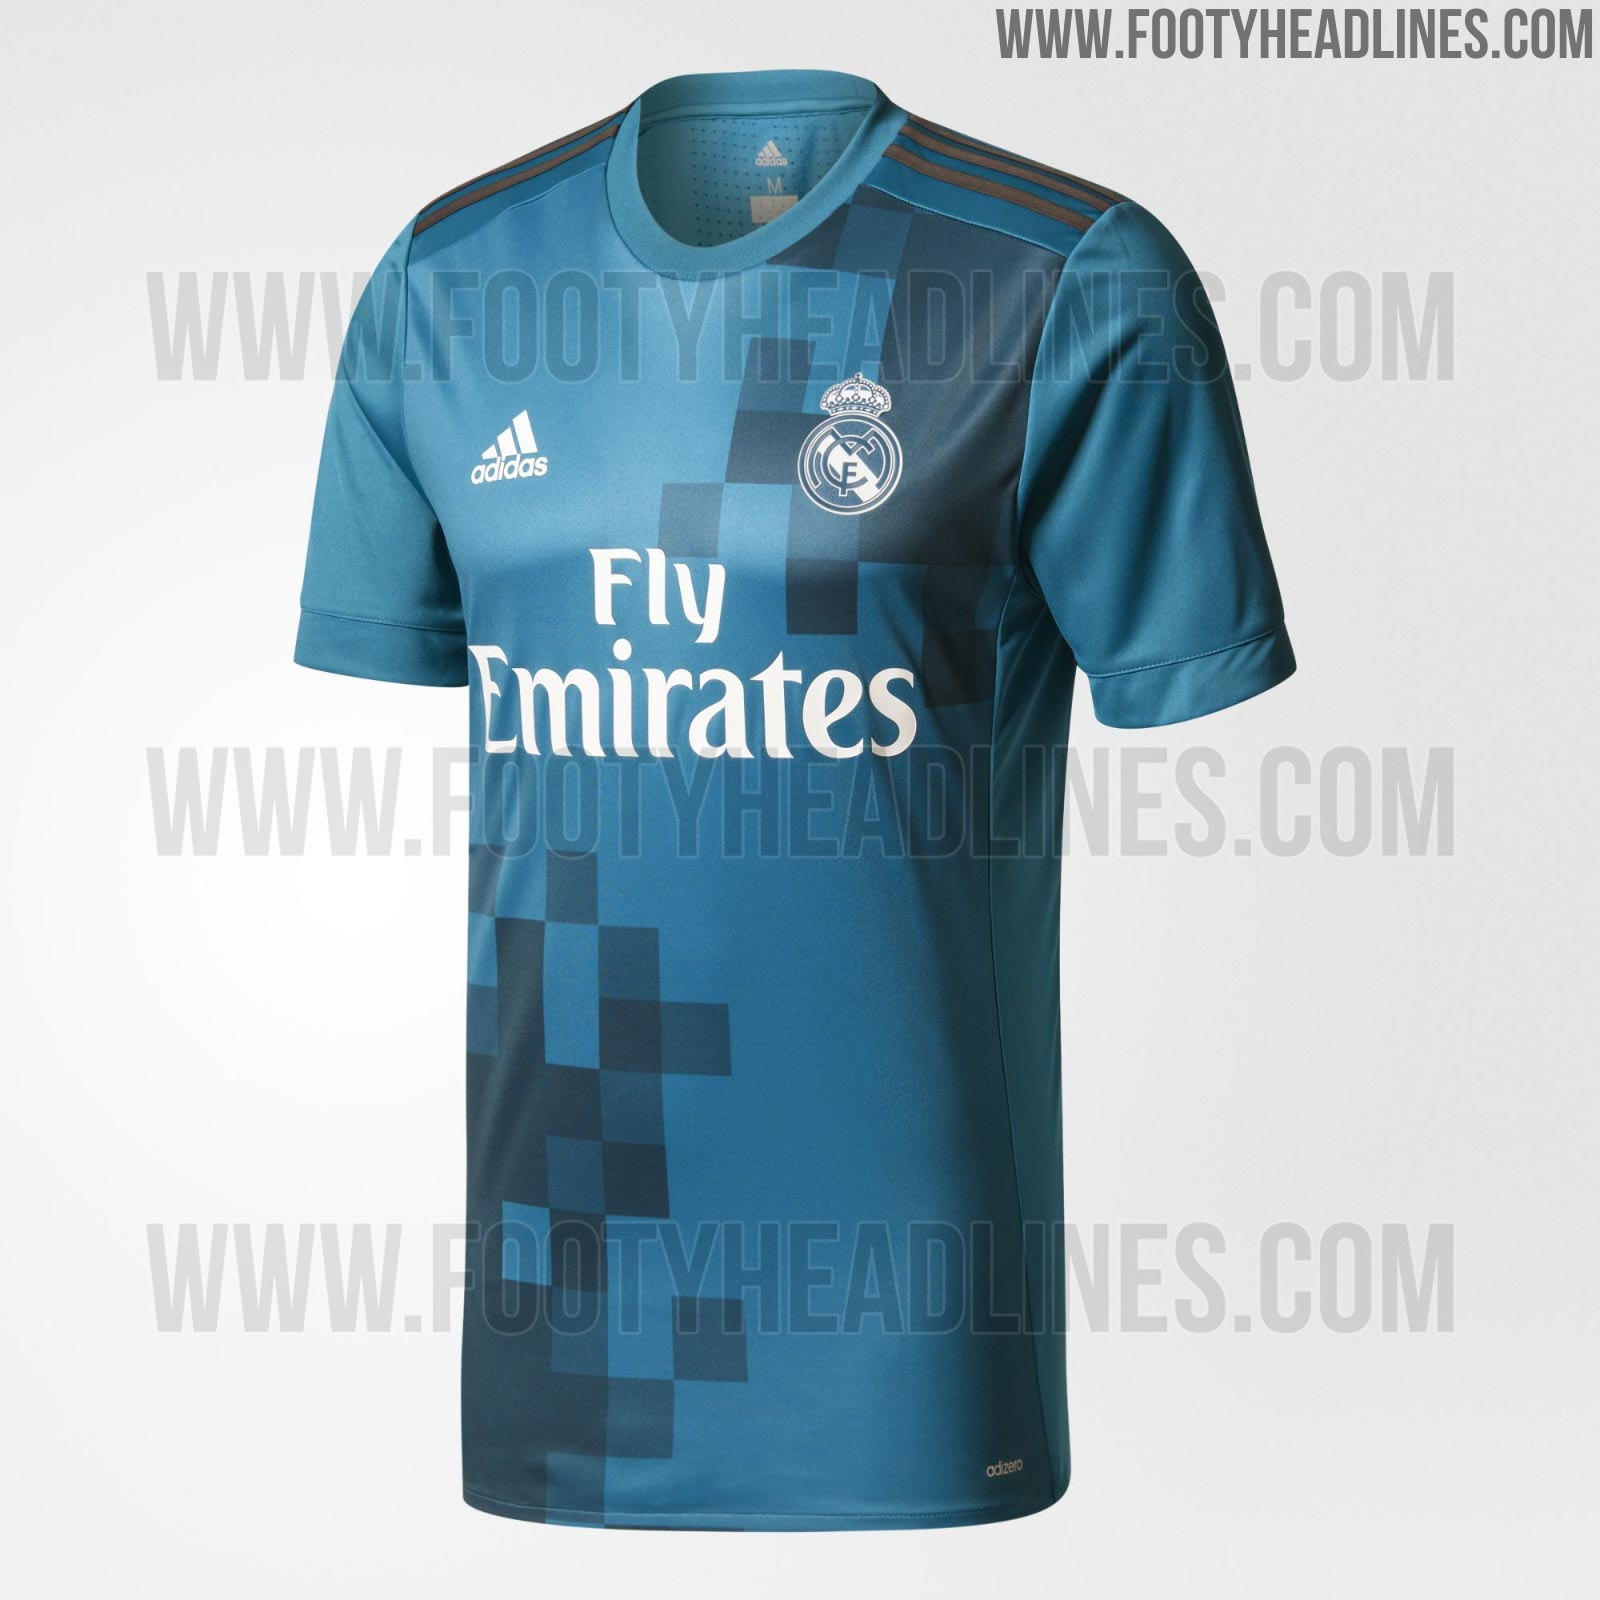 Grey Cup 2017 Photos >> Real Madrid 17-18 Third Kit Released - Footy Headlines